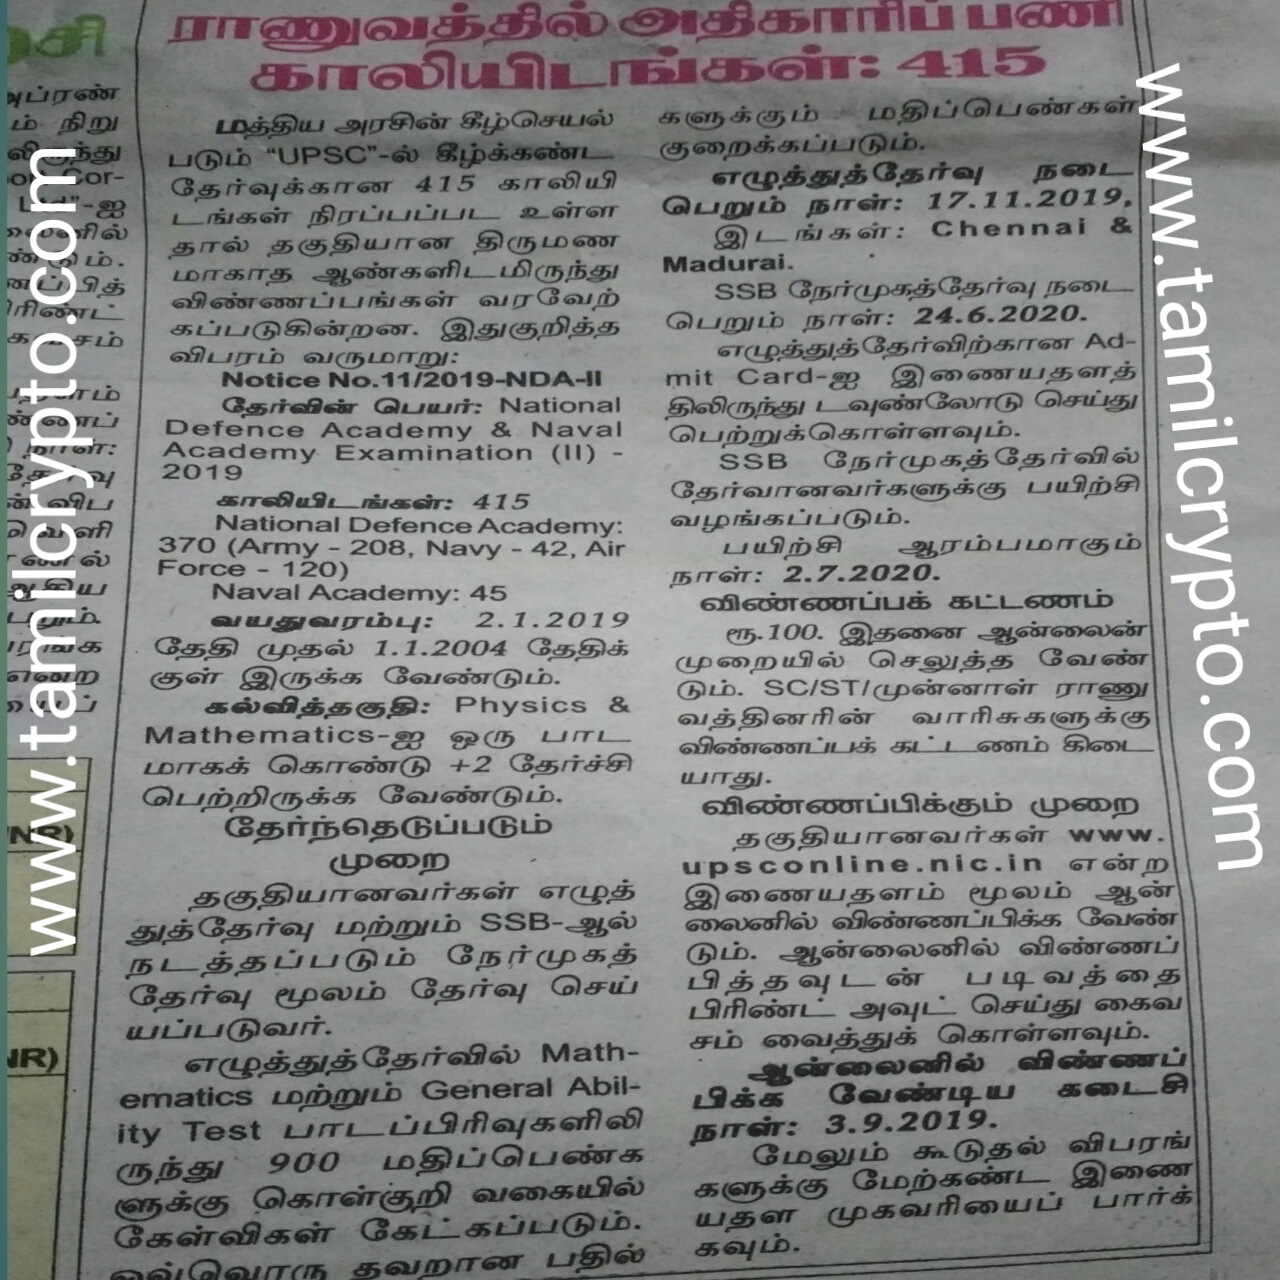 UPSC EXAM LATEST ANNOUNCEMENT TAMIL